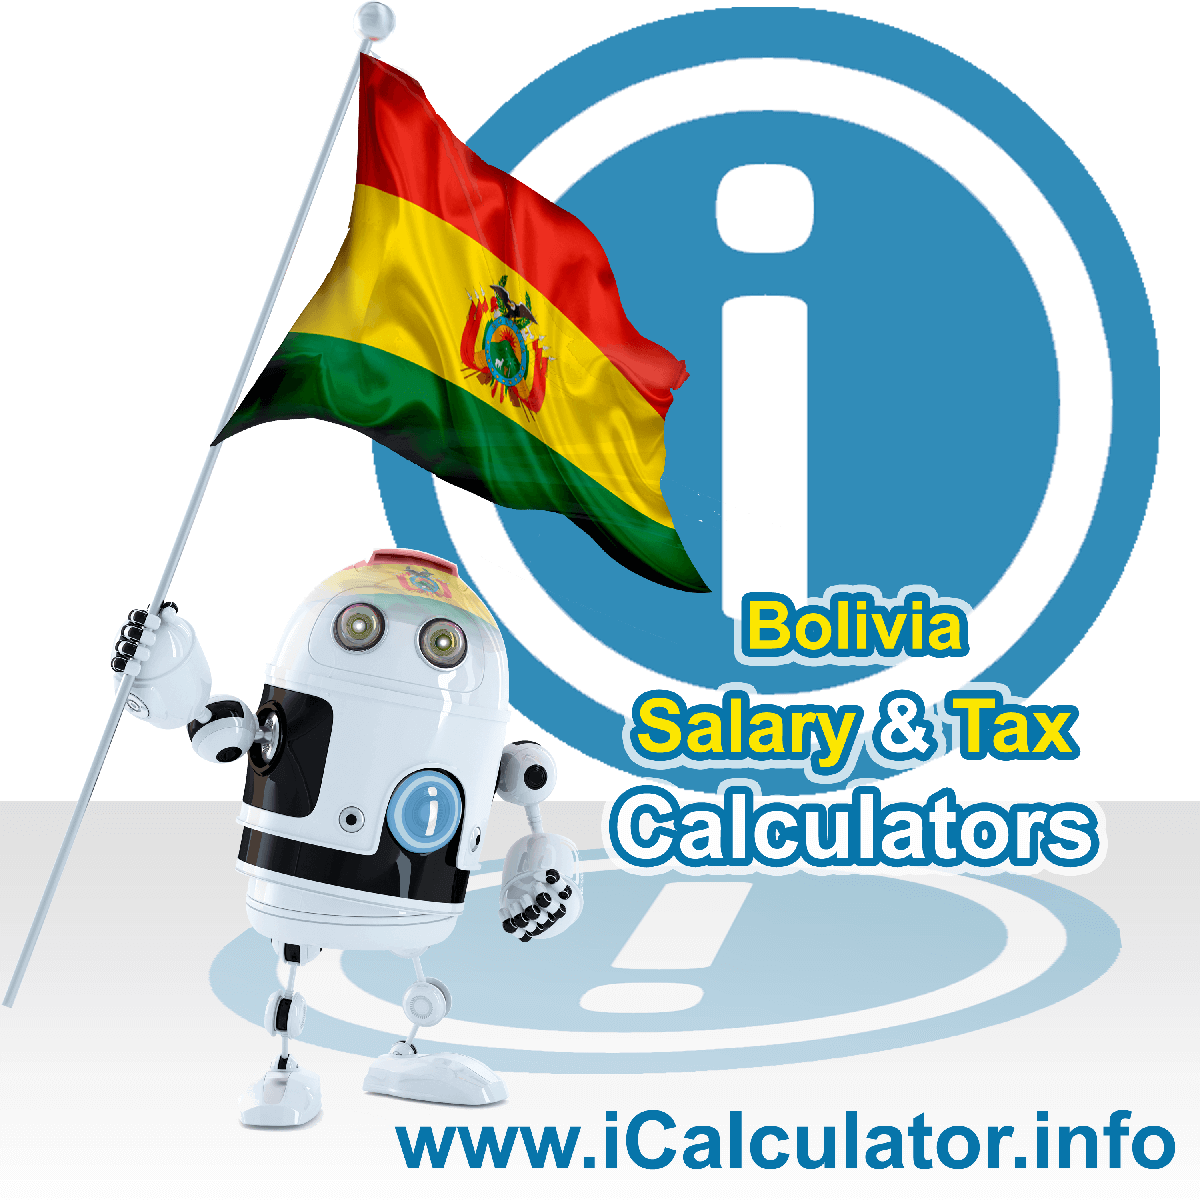 Bolivia Salary Calculator. This image shows the Boliviaese flag and information relating to the tax formula for the Bolivia Tax Calculator